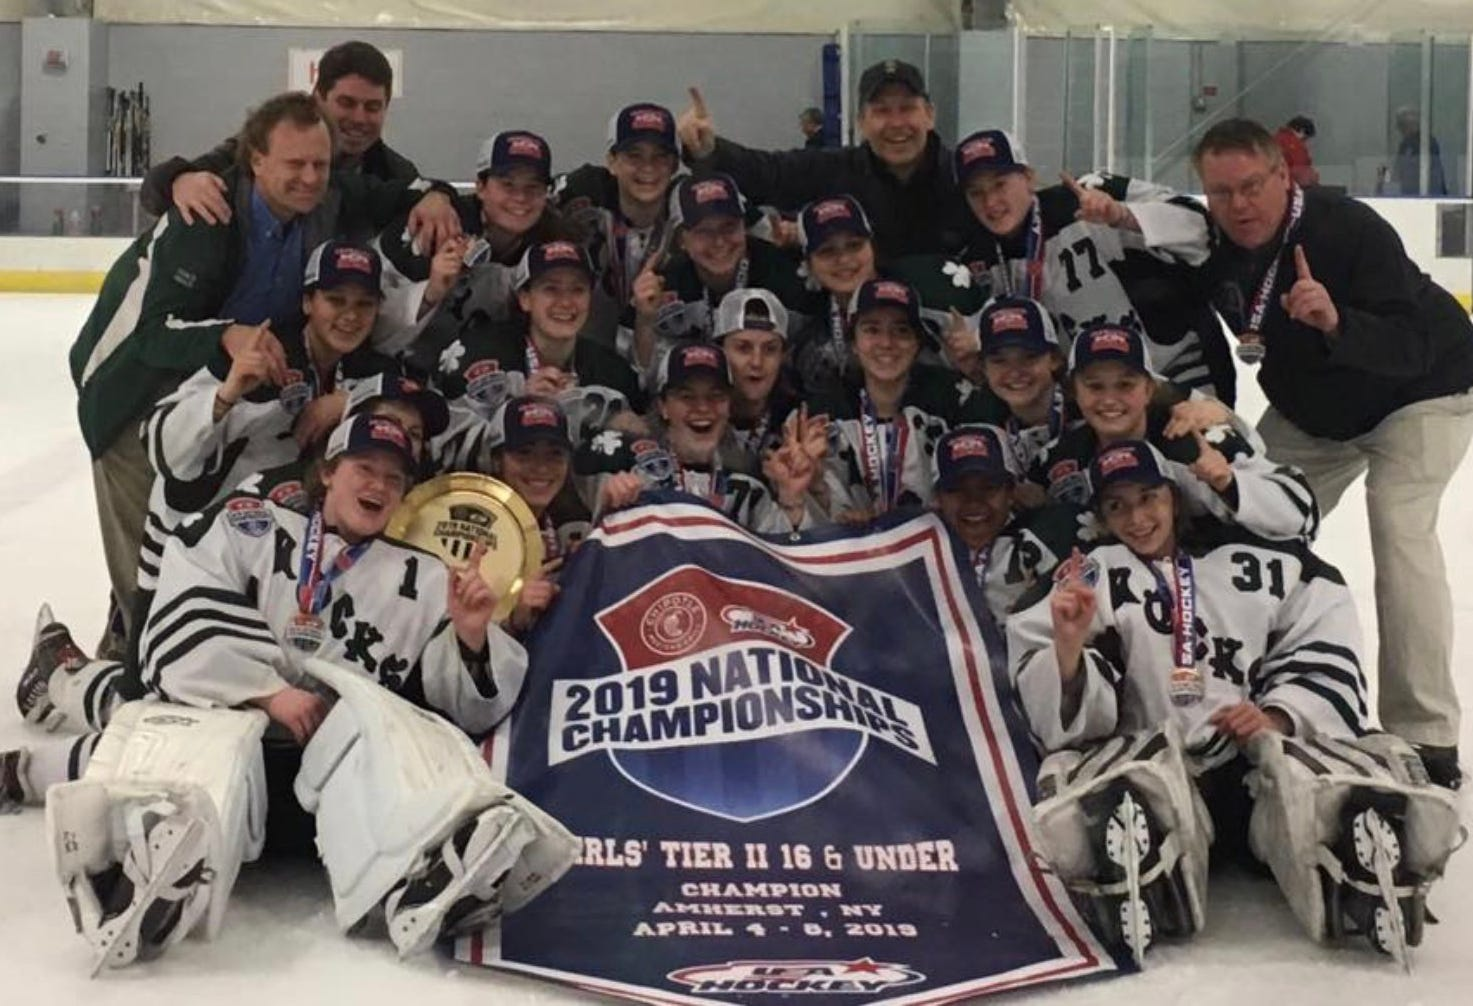 The 16U Vermont Shamrocks pose for a celebratory photo after winning the Tier II national championship in Amherst, New York, on Monday morning.